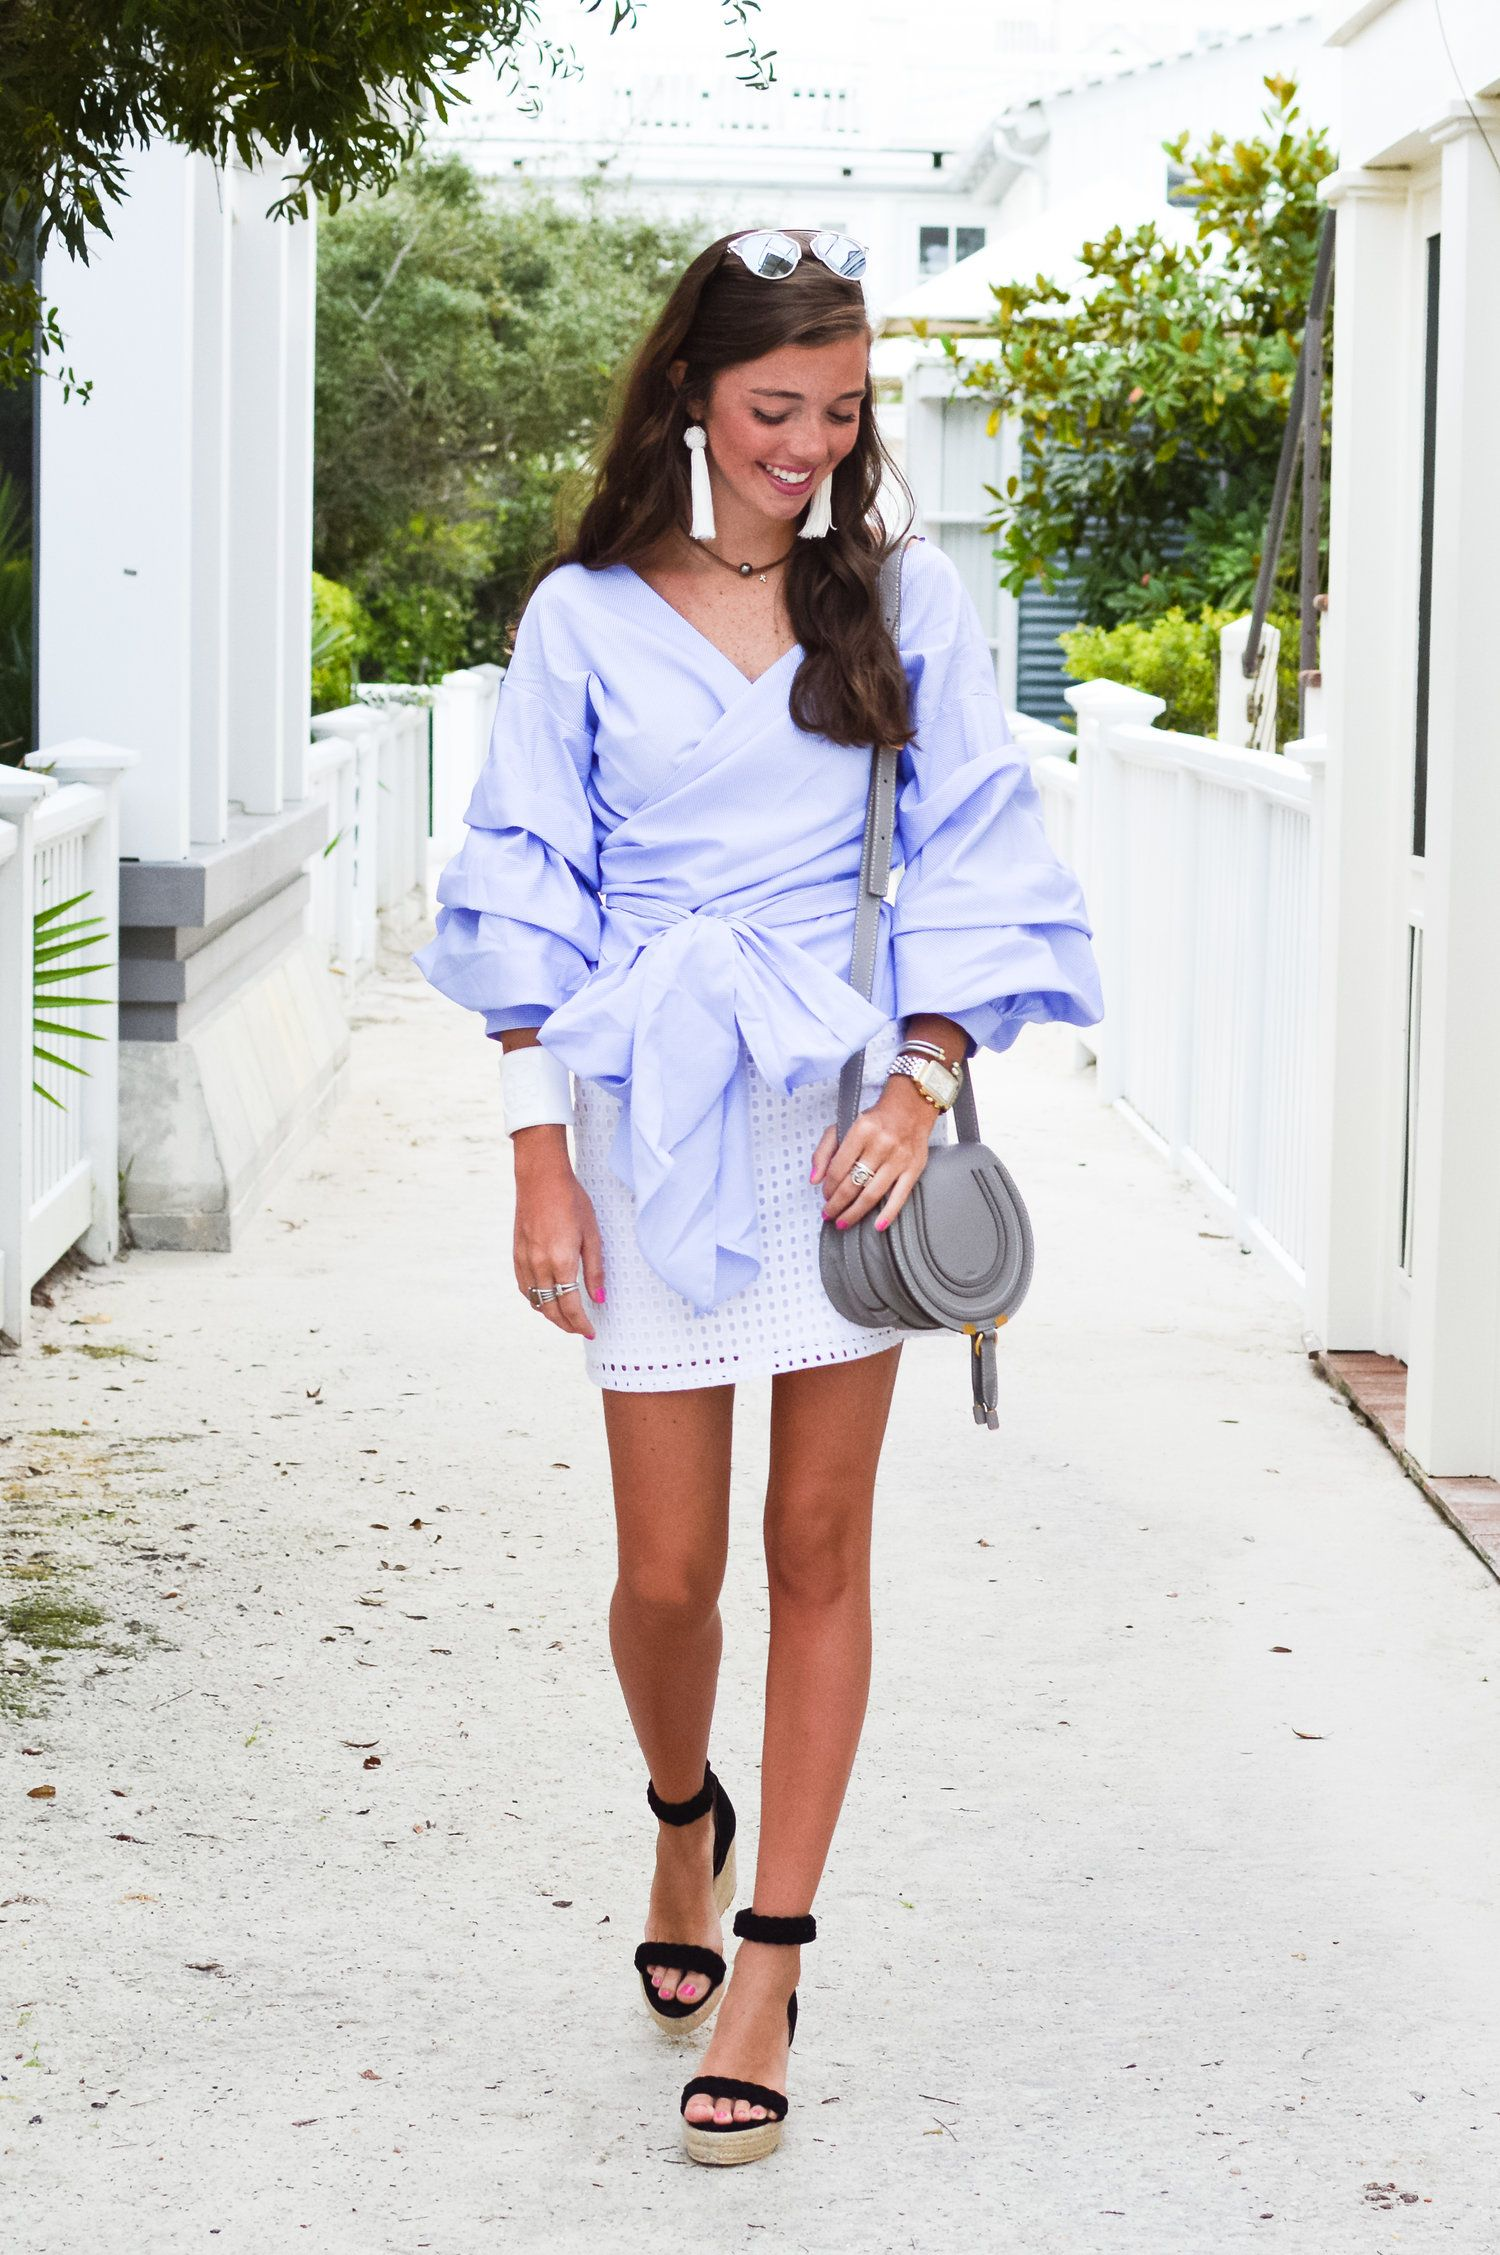 f9f2a4aefad0 fashion blogger lcb style outfit chloe marcie bag style keepers ruffle  outfit tory burch raye seaside florida beach tassel earrings dior so real  sunglasses